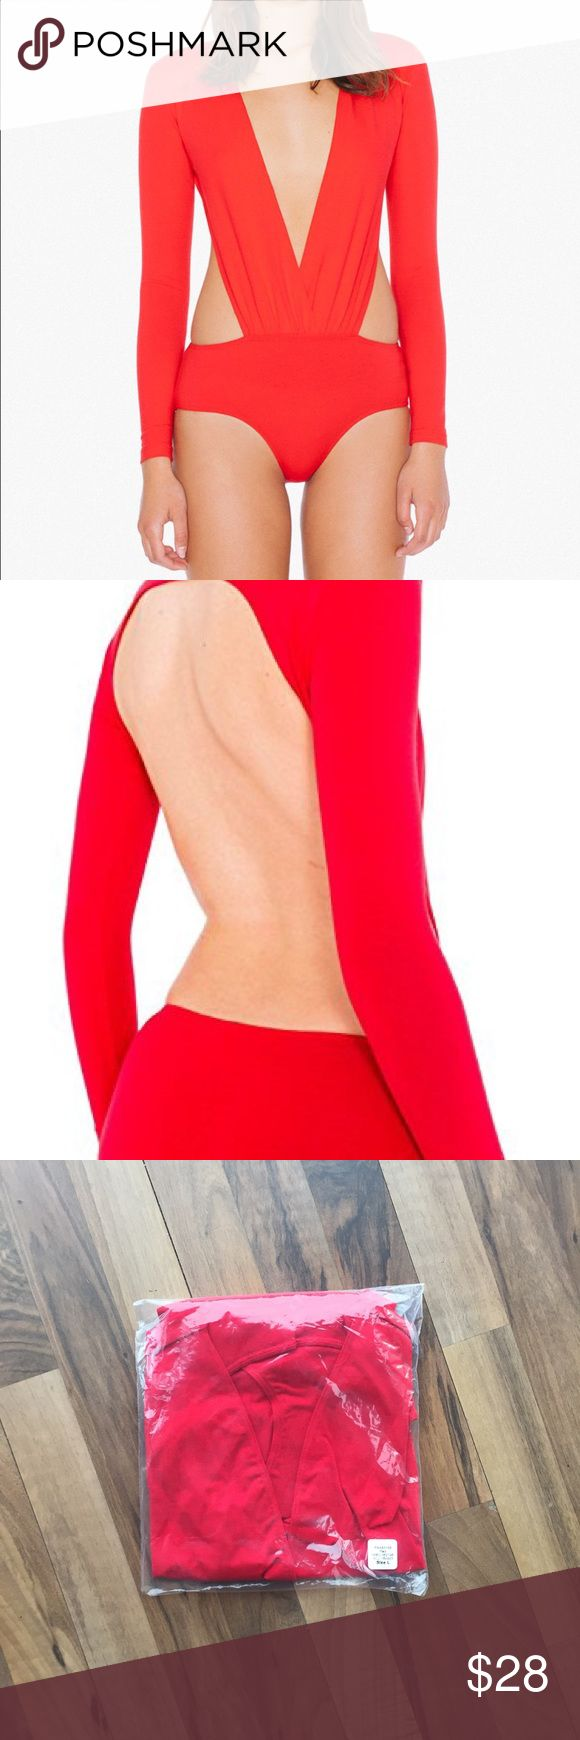 American Apparel Deep V Cutout Bodysuit -- Large Brand new. Still is original shipping package.  Sexy cotton spandex bodysuit with open back, side cutouts, deep v-neck and long sleeves.   95% Cotton 5% Spandex American Apparel Tops